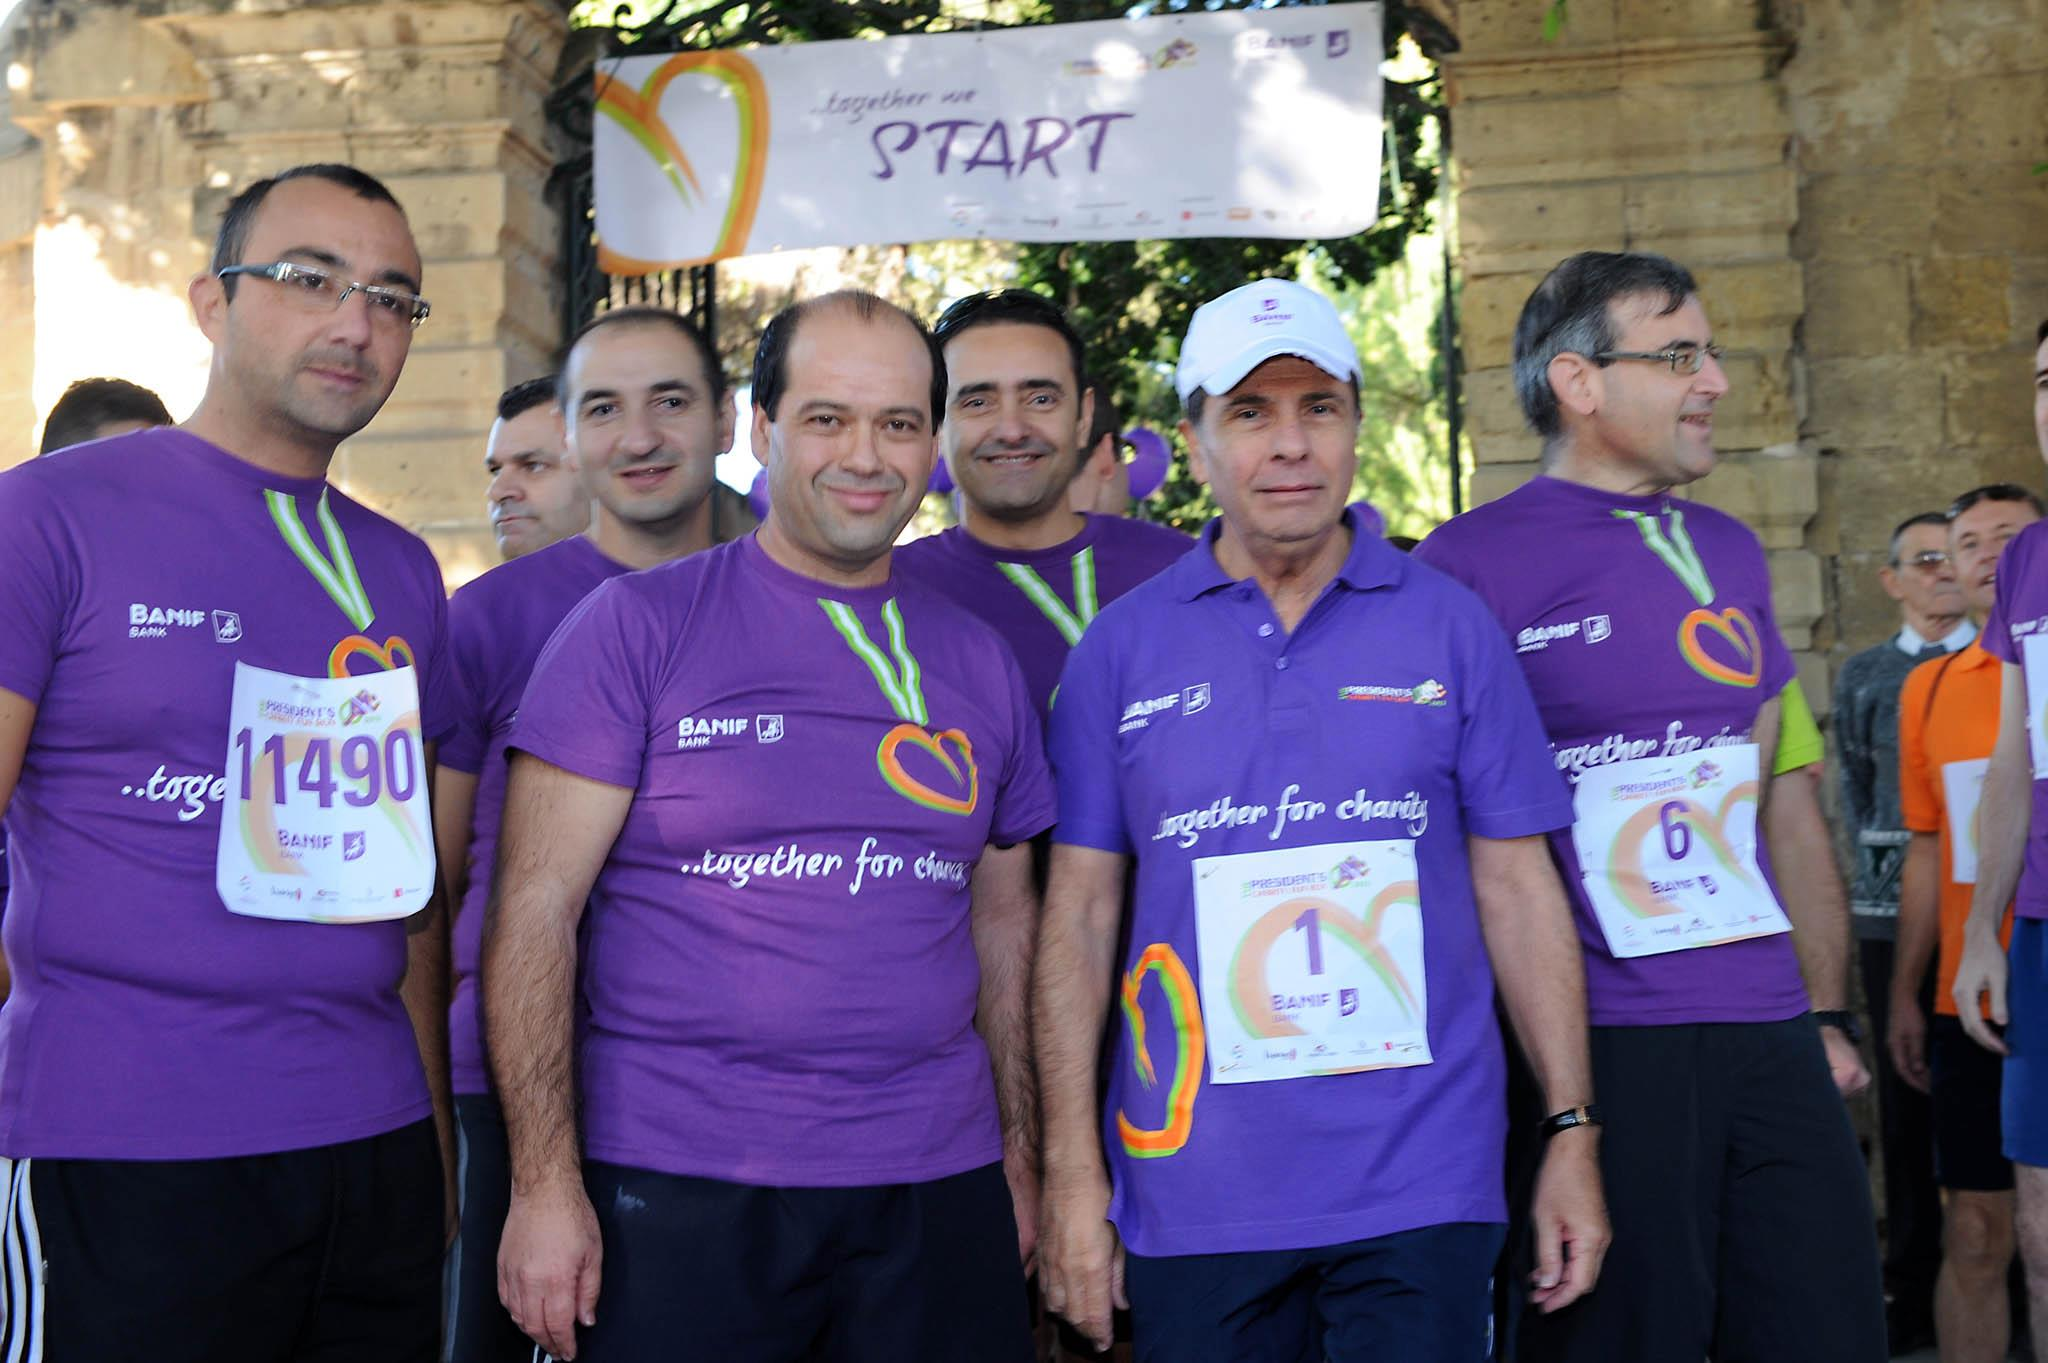 MalDia 09 (10-12-14) George Abela (second from right) the founder of the Run-Walk